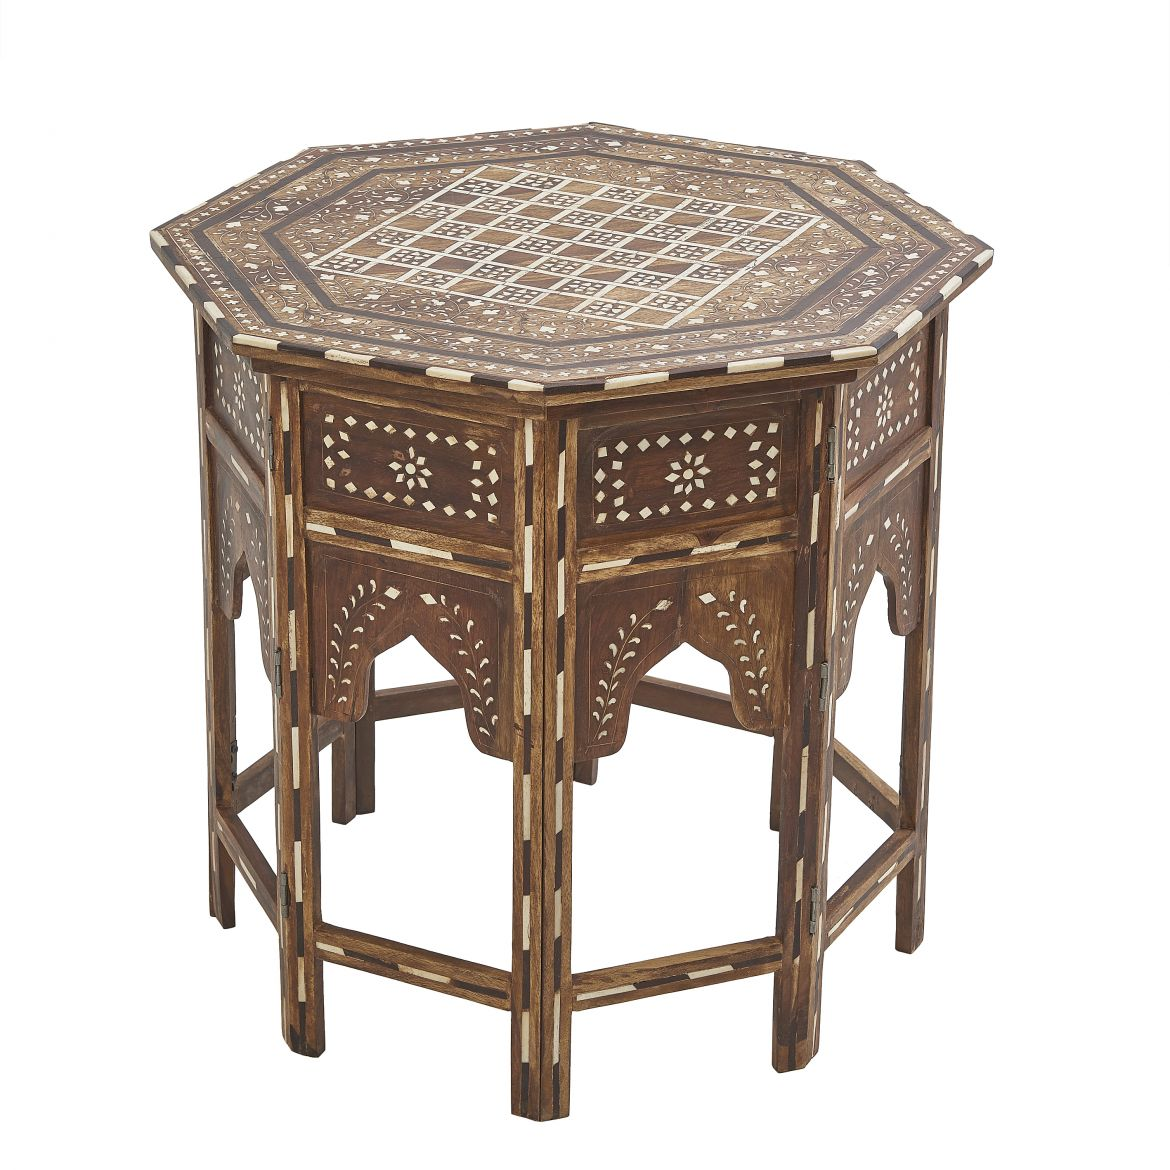 Contemporary Inlaid Folding Table